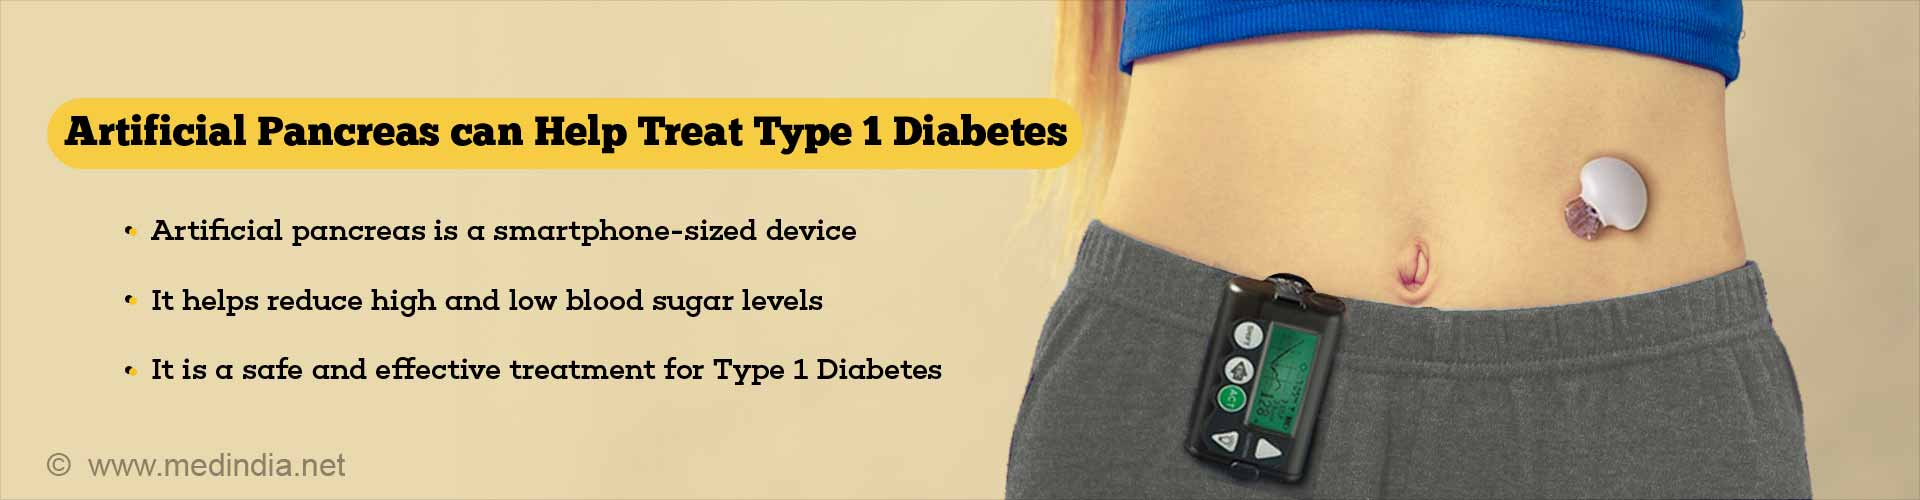 Artificial Pancreas 'Safe'' for Treating Type 1 Diabetes